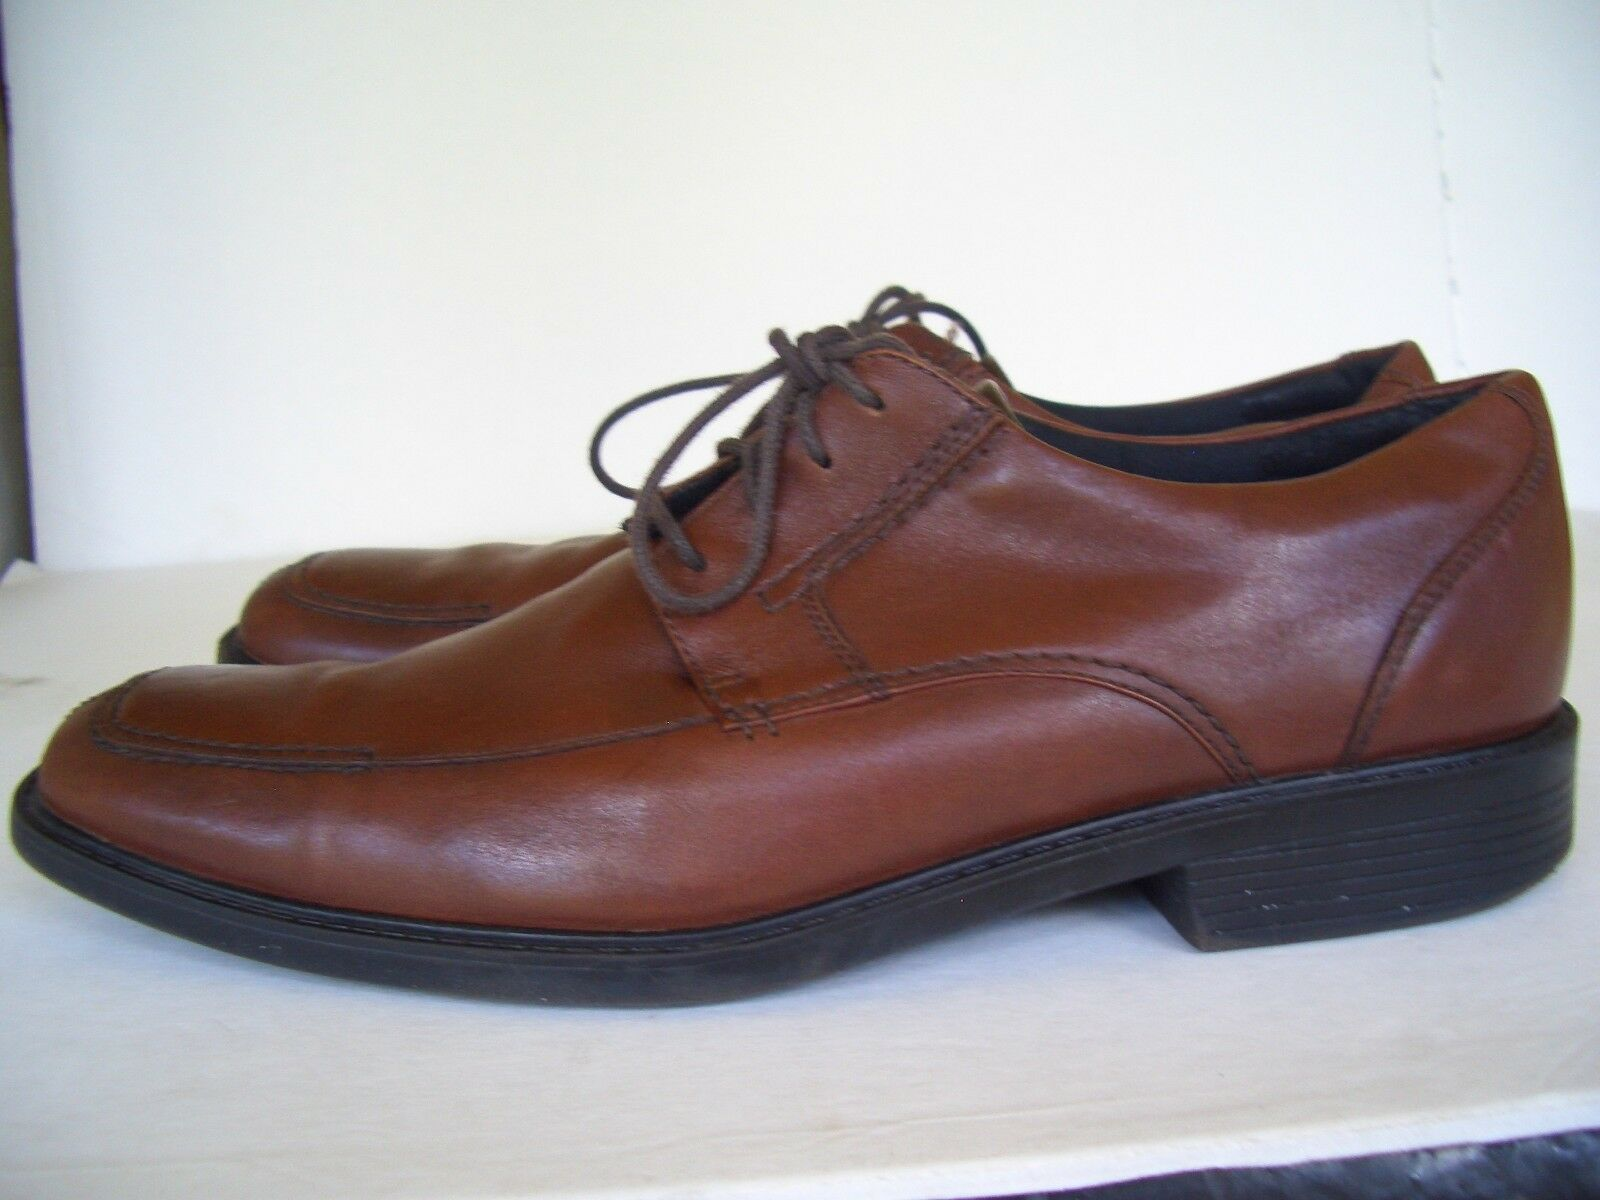 Bostonian Flexlite Mens Size 12 Shoes  Brown Leather Oxfords Shoes 12 26cb72